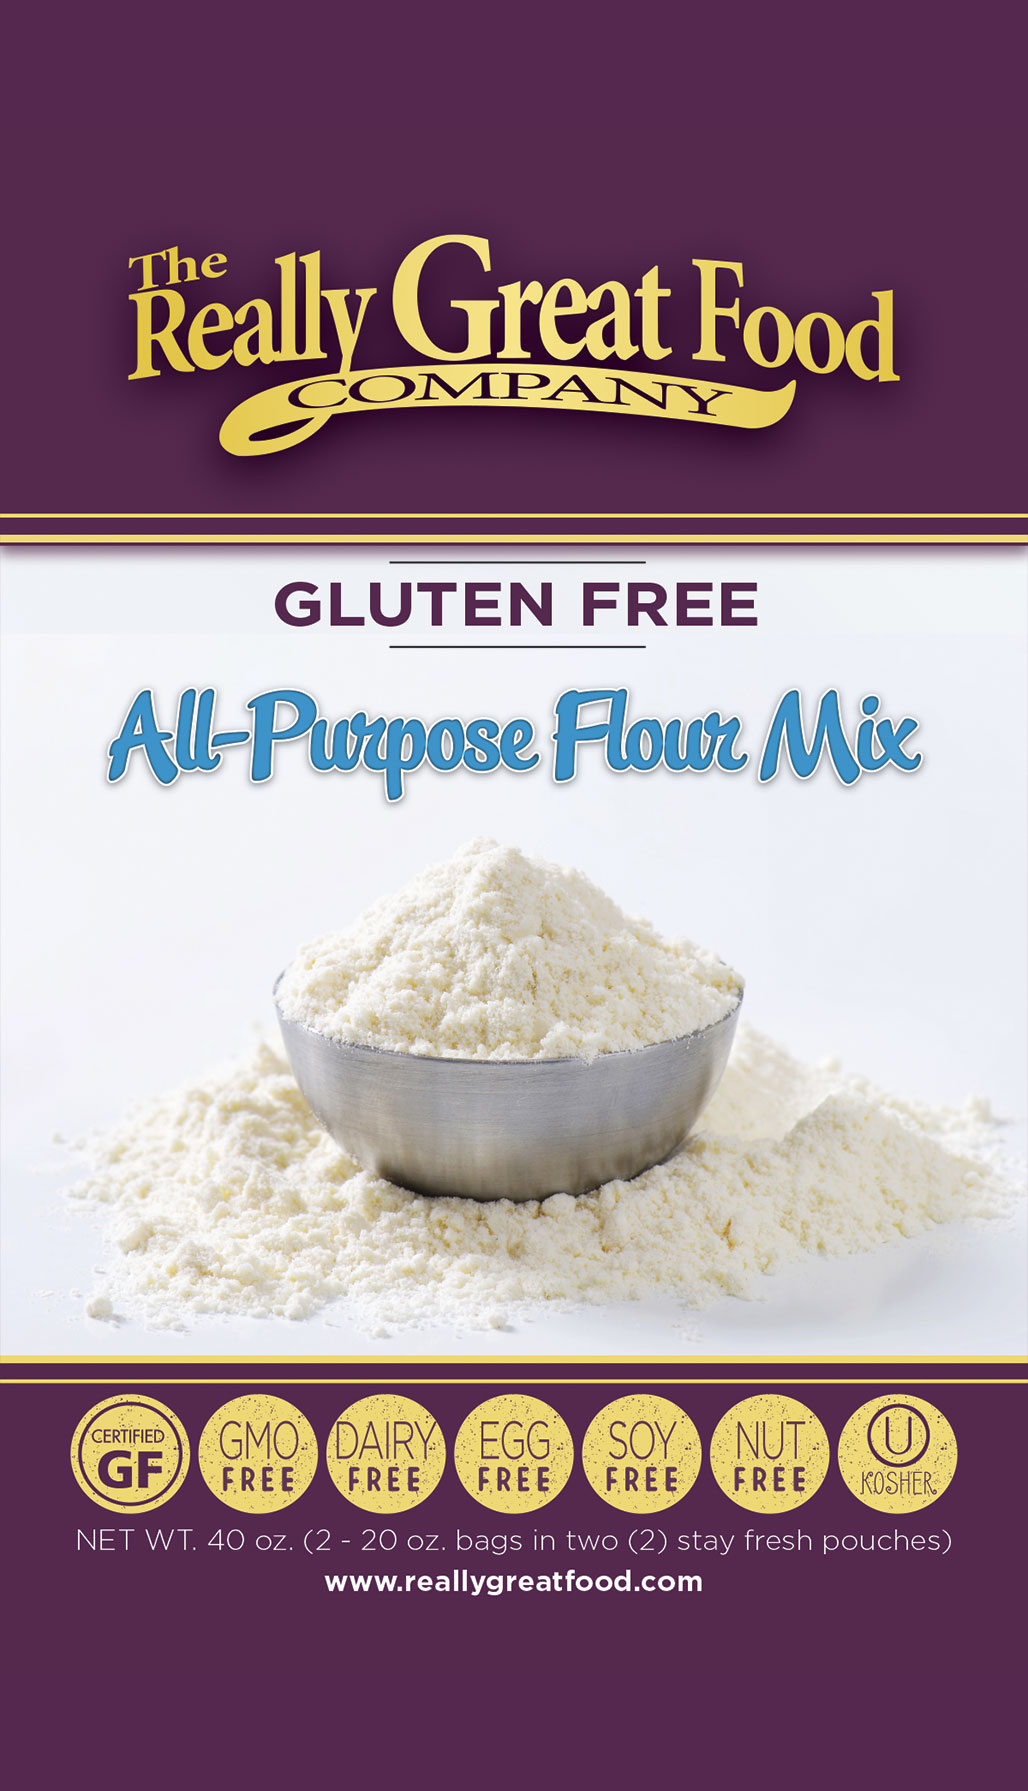 Gluten Free All-Purpose Flour Mix